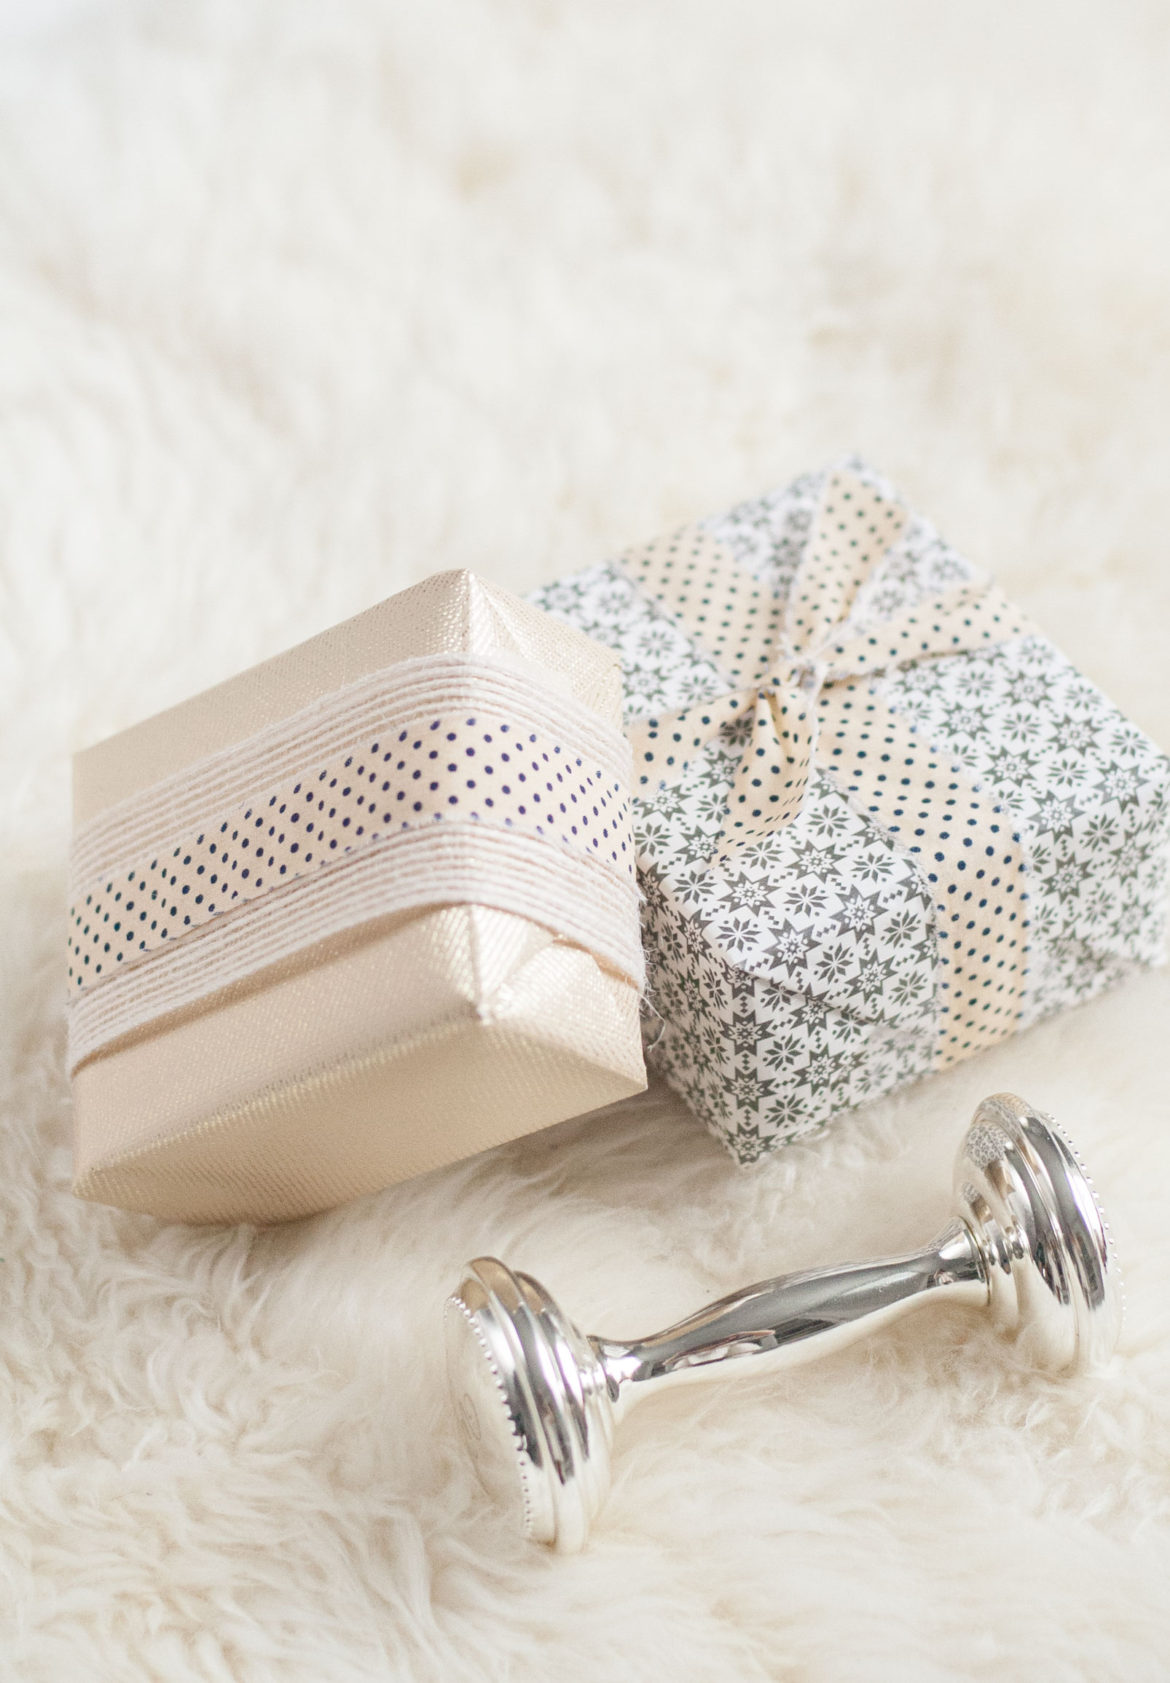 bit-and-bauble-baby-christmas-gift-guide-ideas-2018